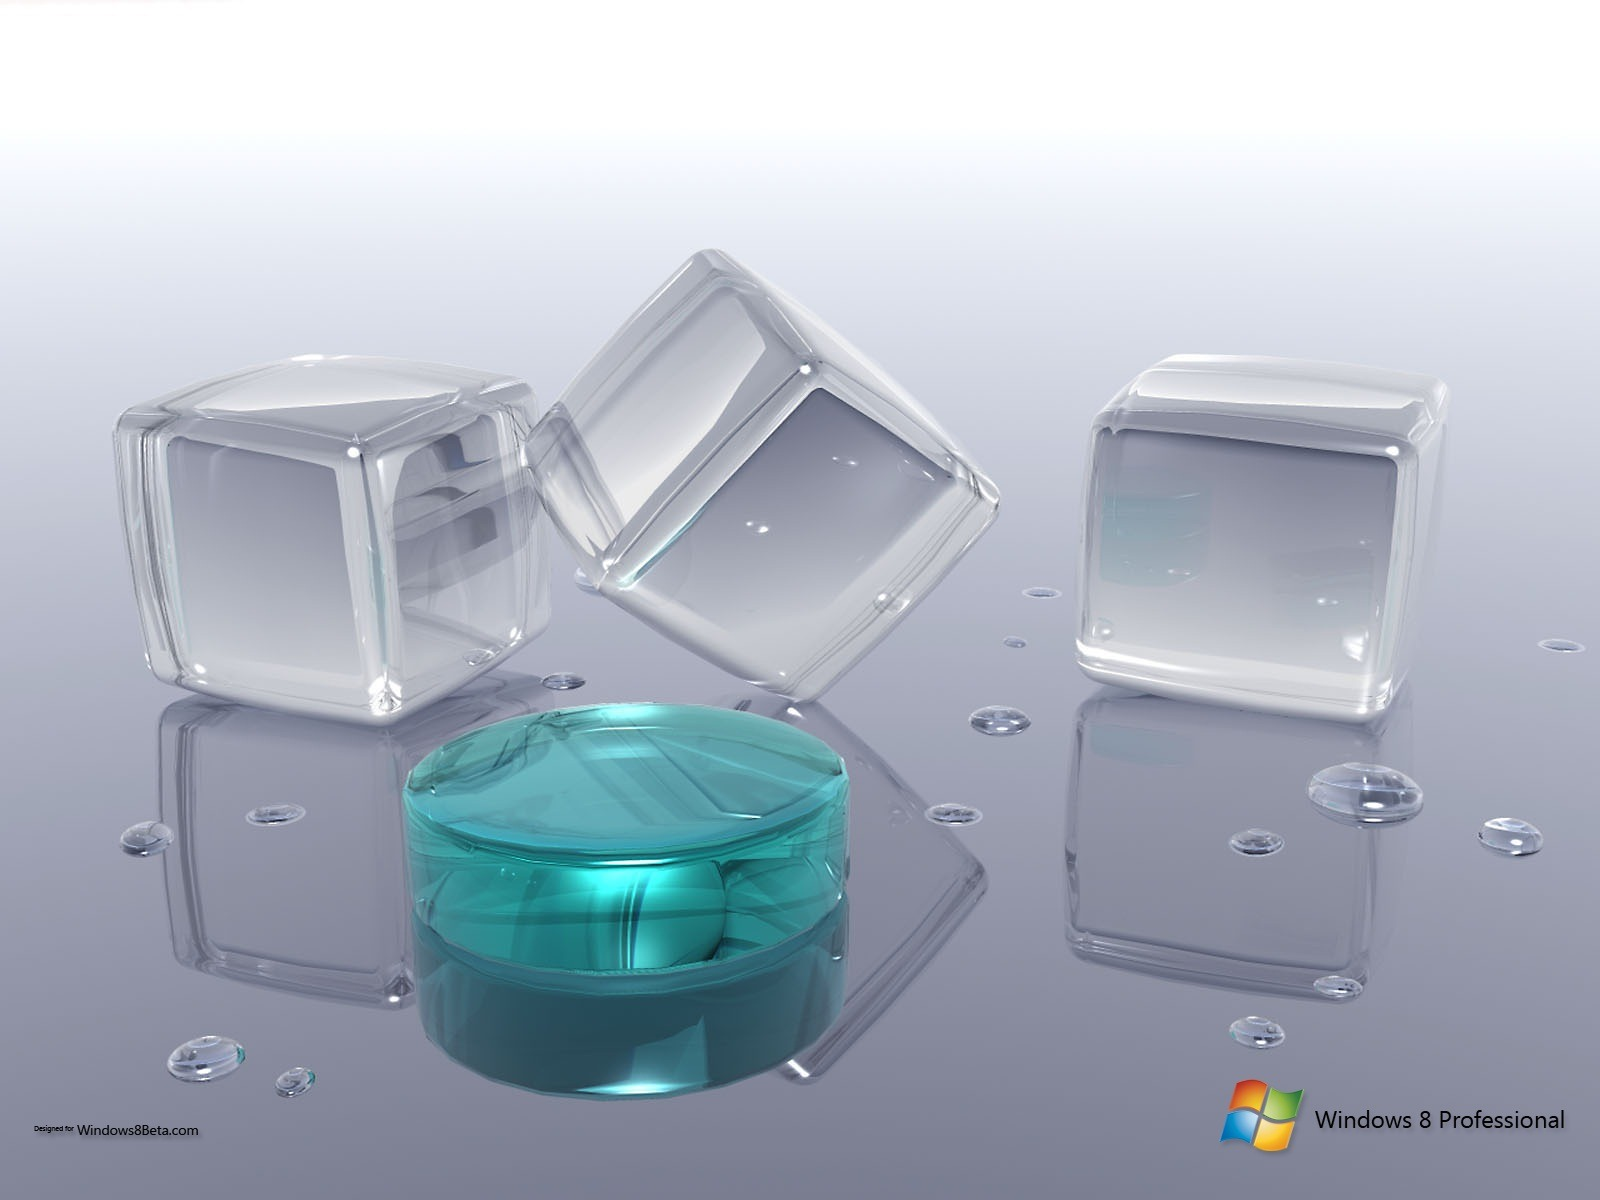 Windows 8 Crystal Wallpaper | Windows 8 Themes and Wallpapers